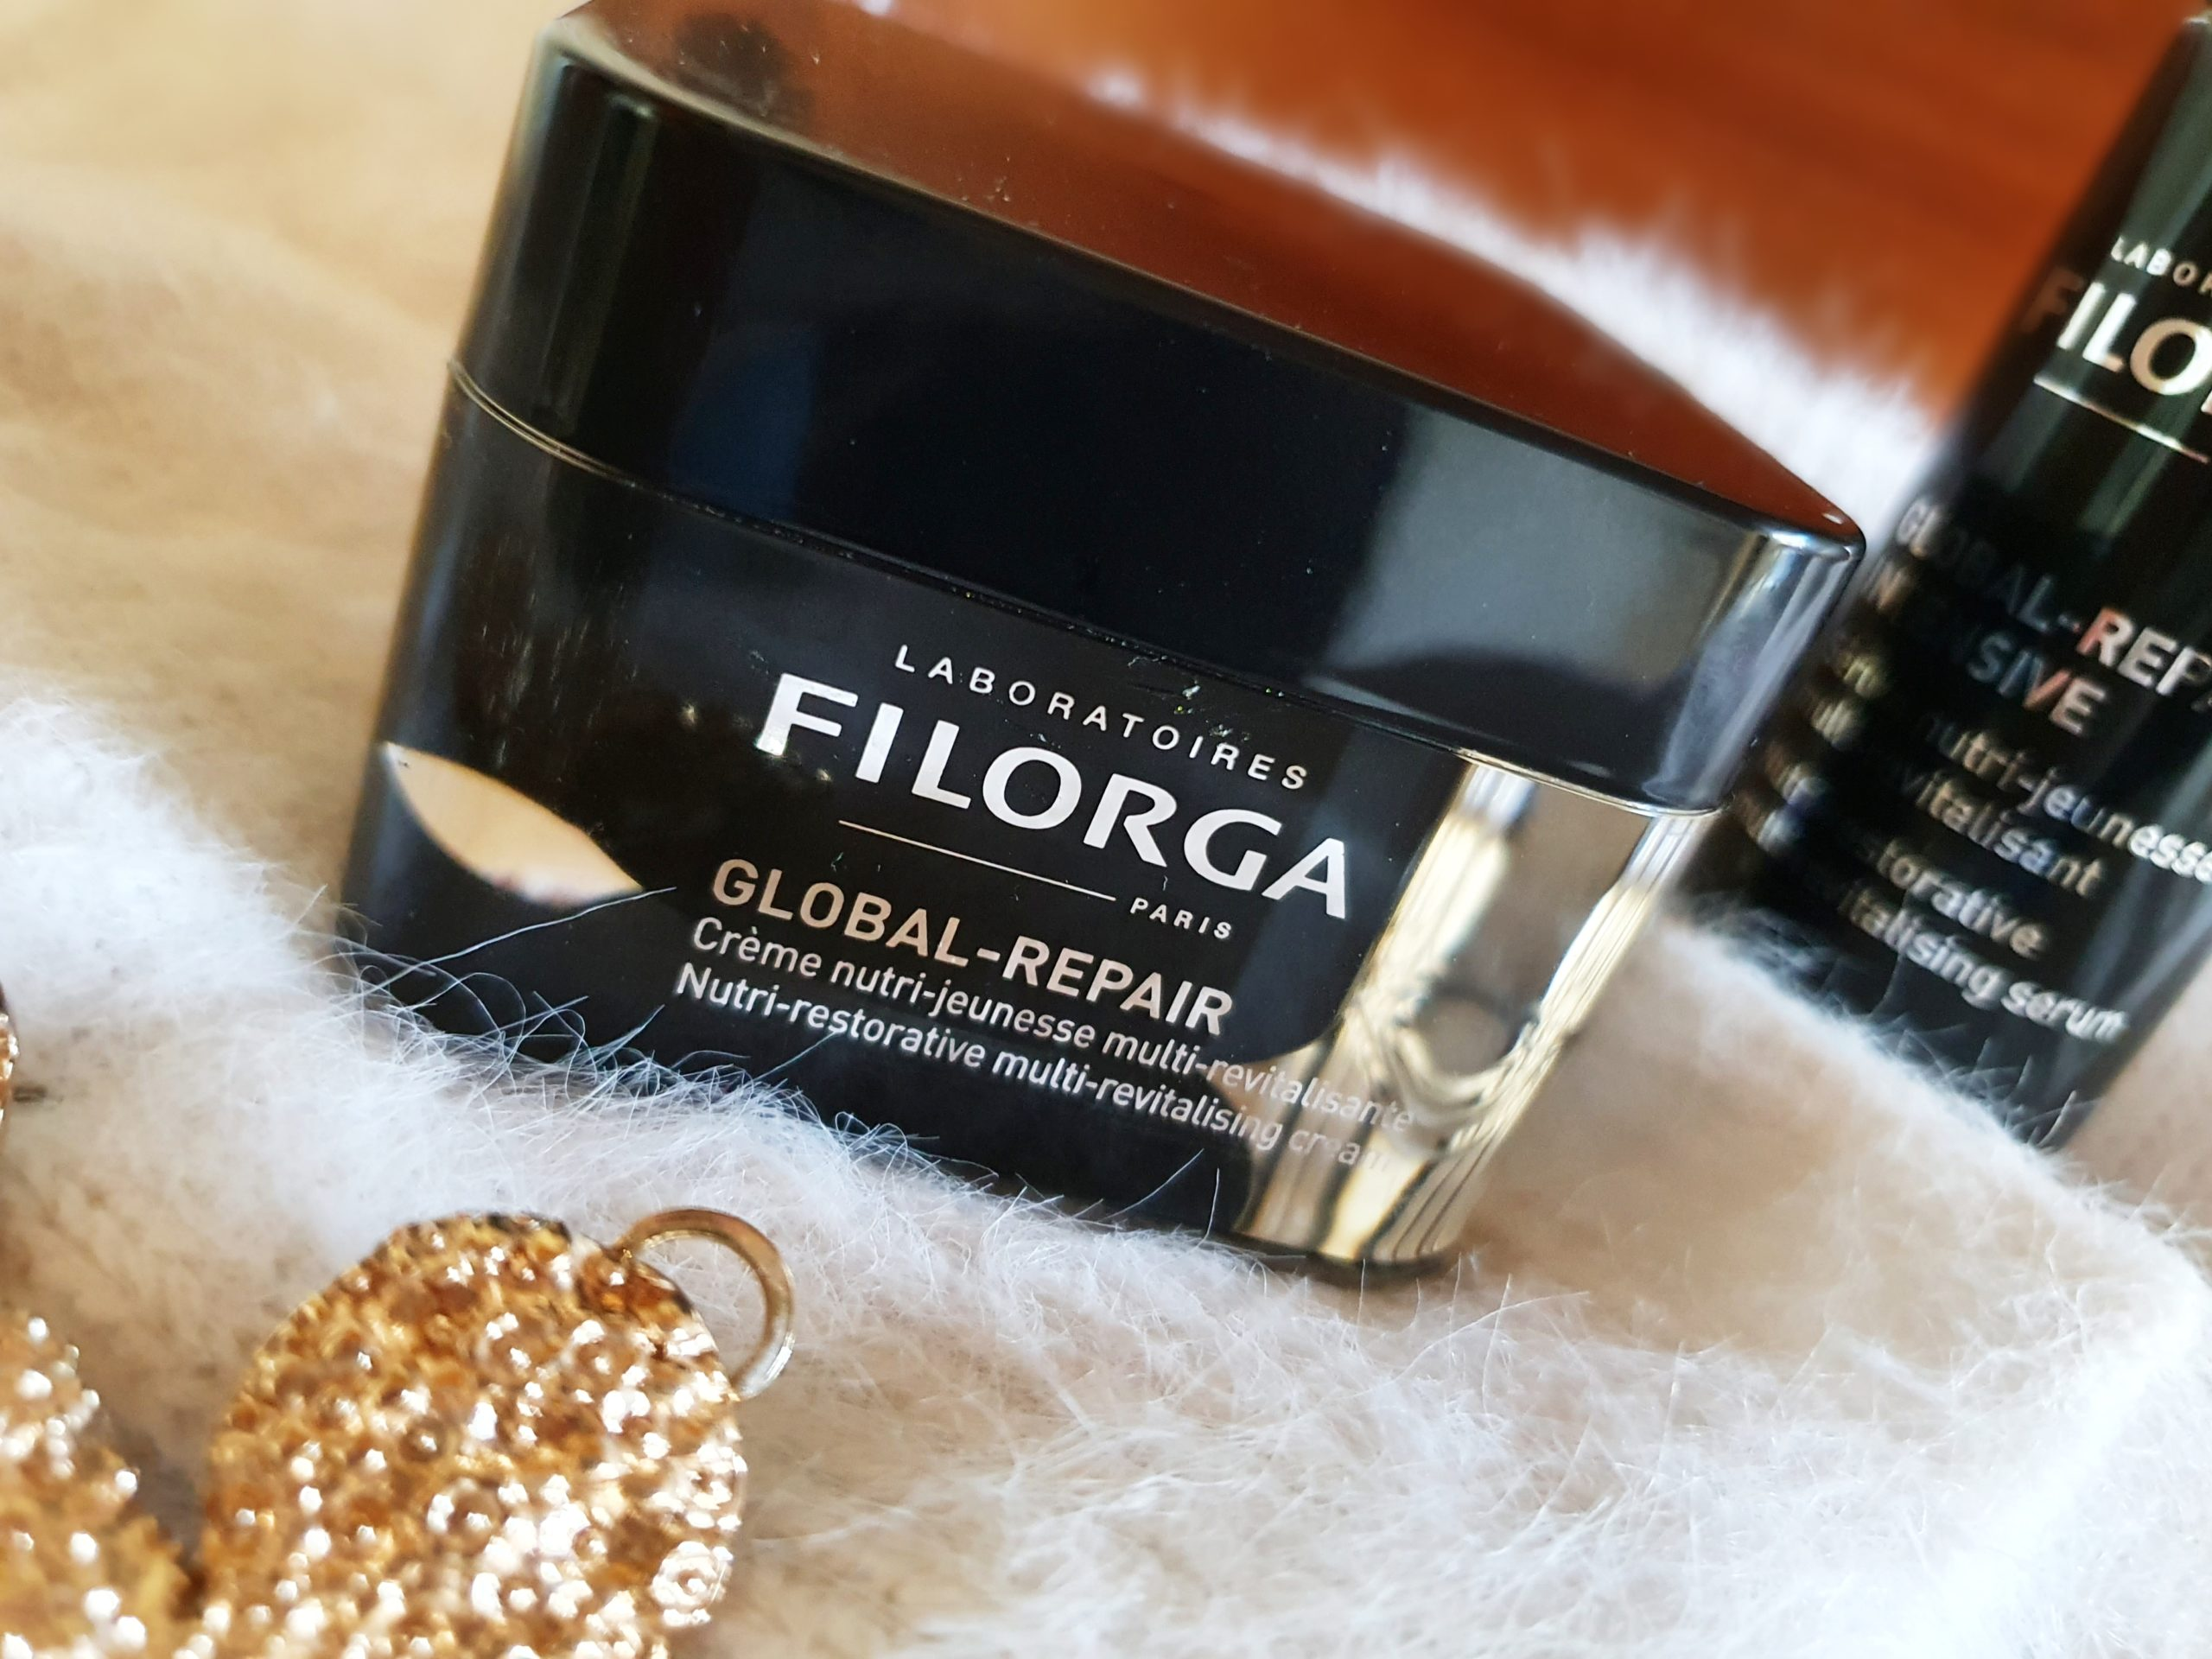 Global-Repair Filorga Crème nutri-jeunesse